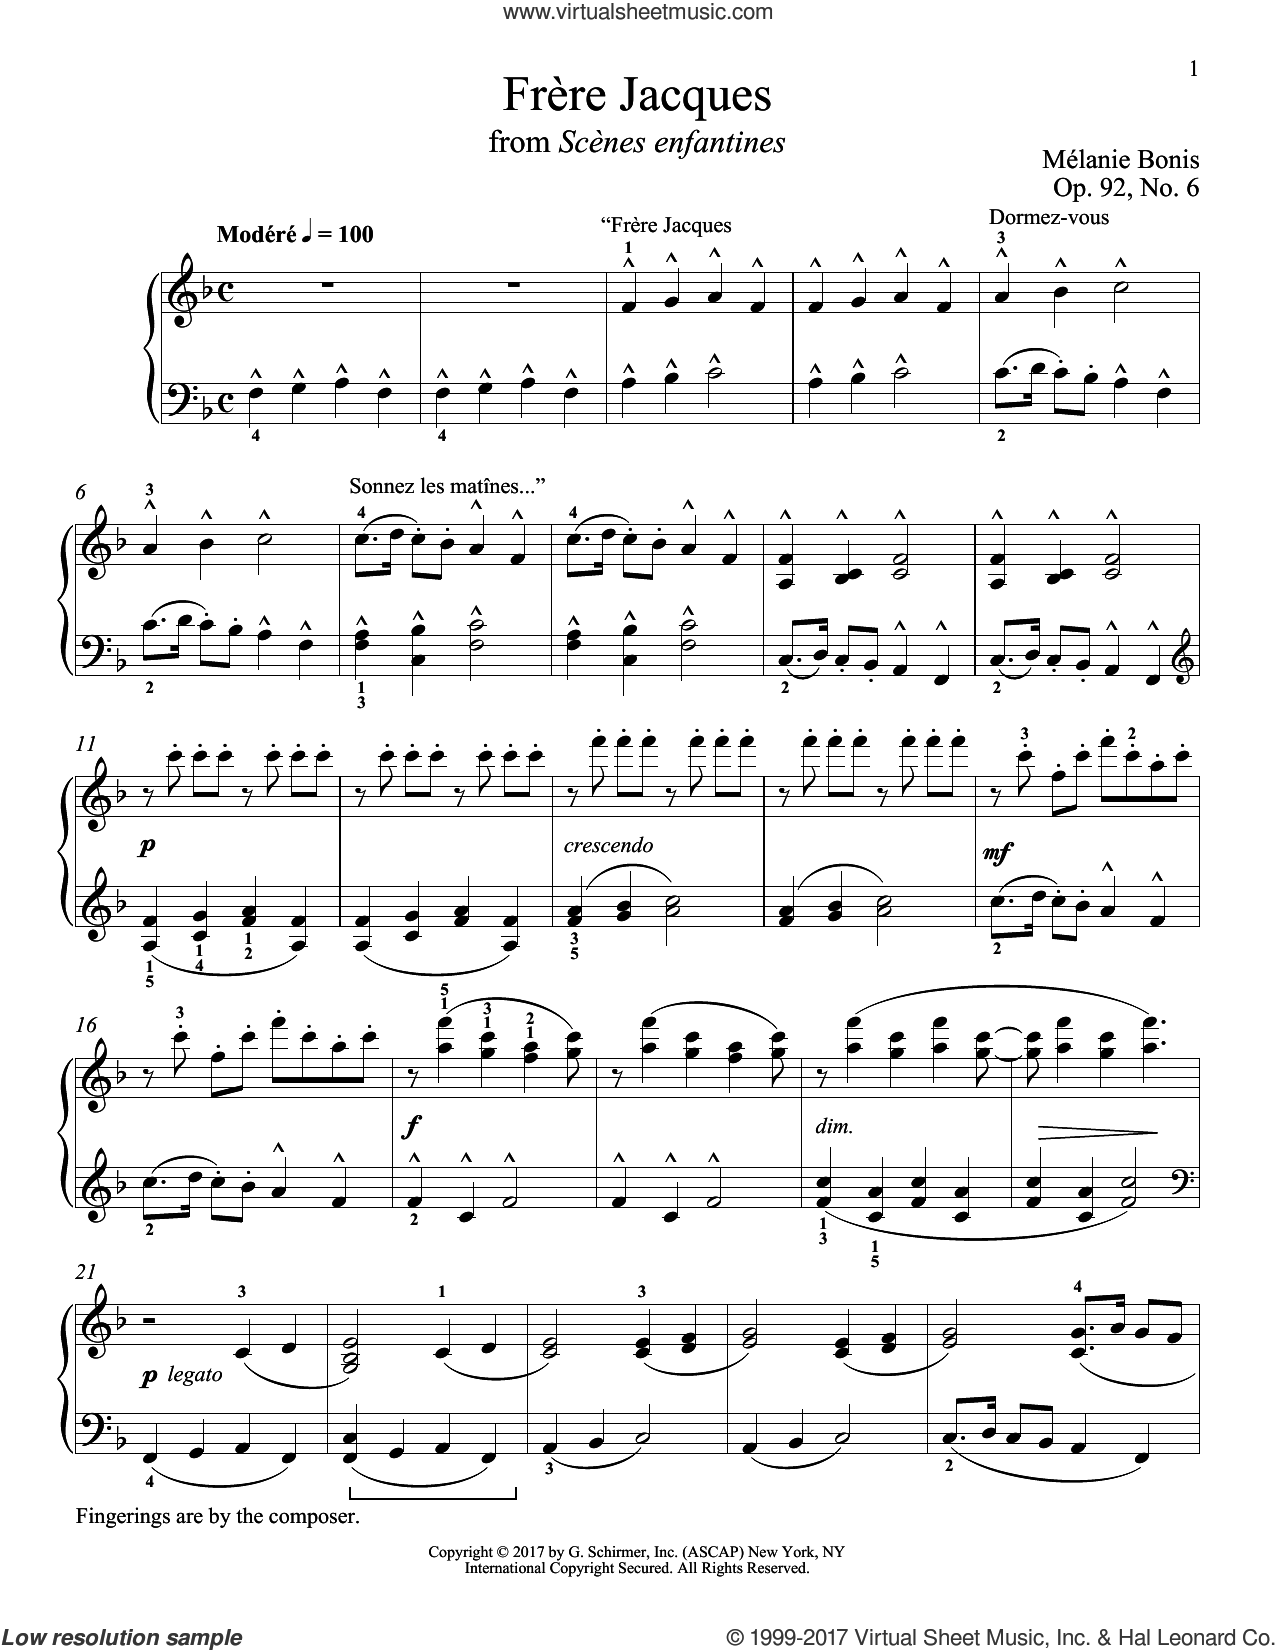 Frere Jacques sheet music for piano solo by Melanie Bonis and Richard Walters, classical score, intermediate skill level